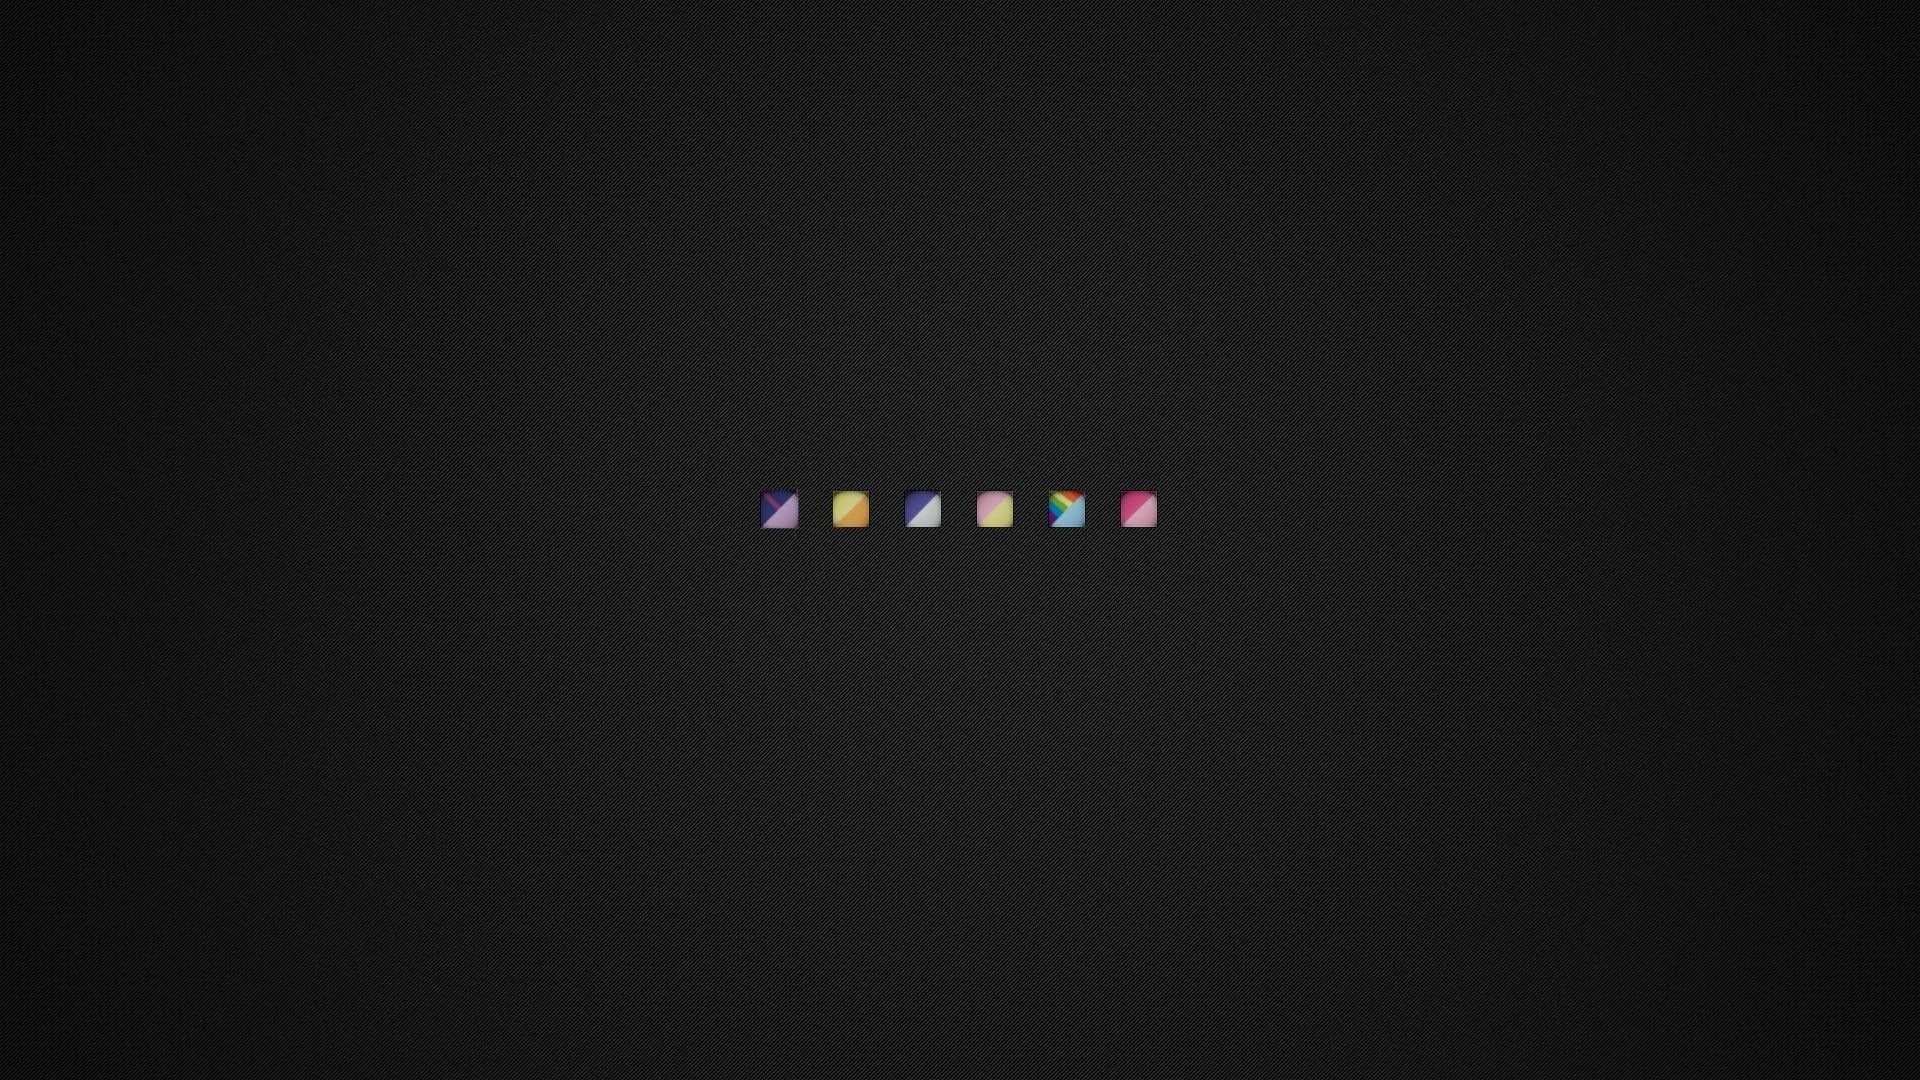 Minimalist Aesthetic Desktop Wallpapers Top Free Minimalist Aesthetic Desktop Backgrounds Wallpaperaccess